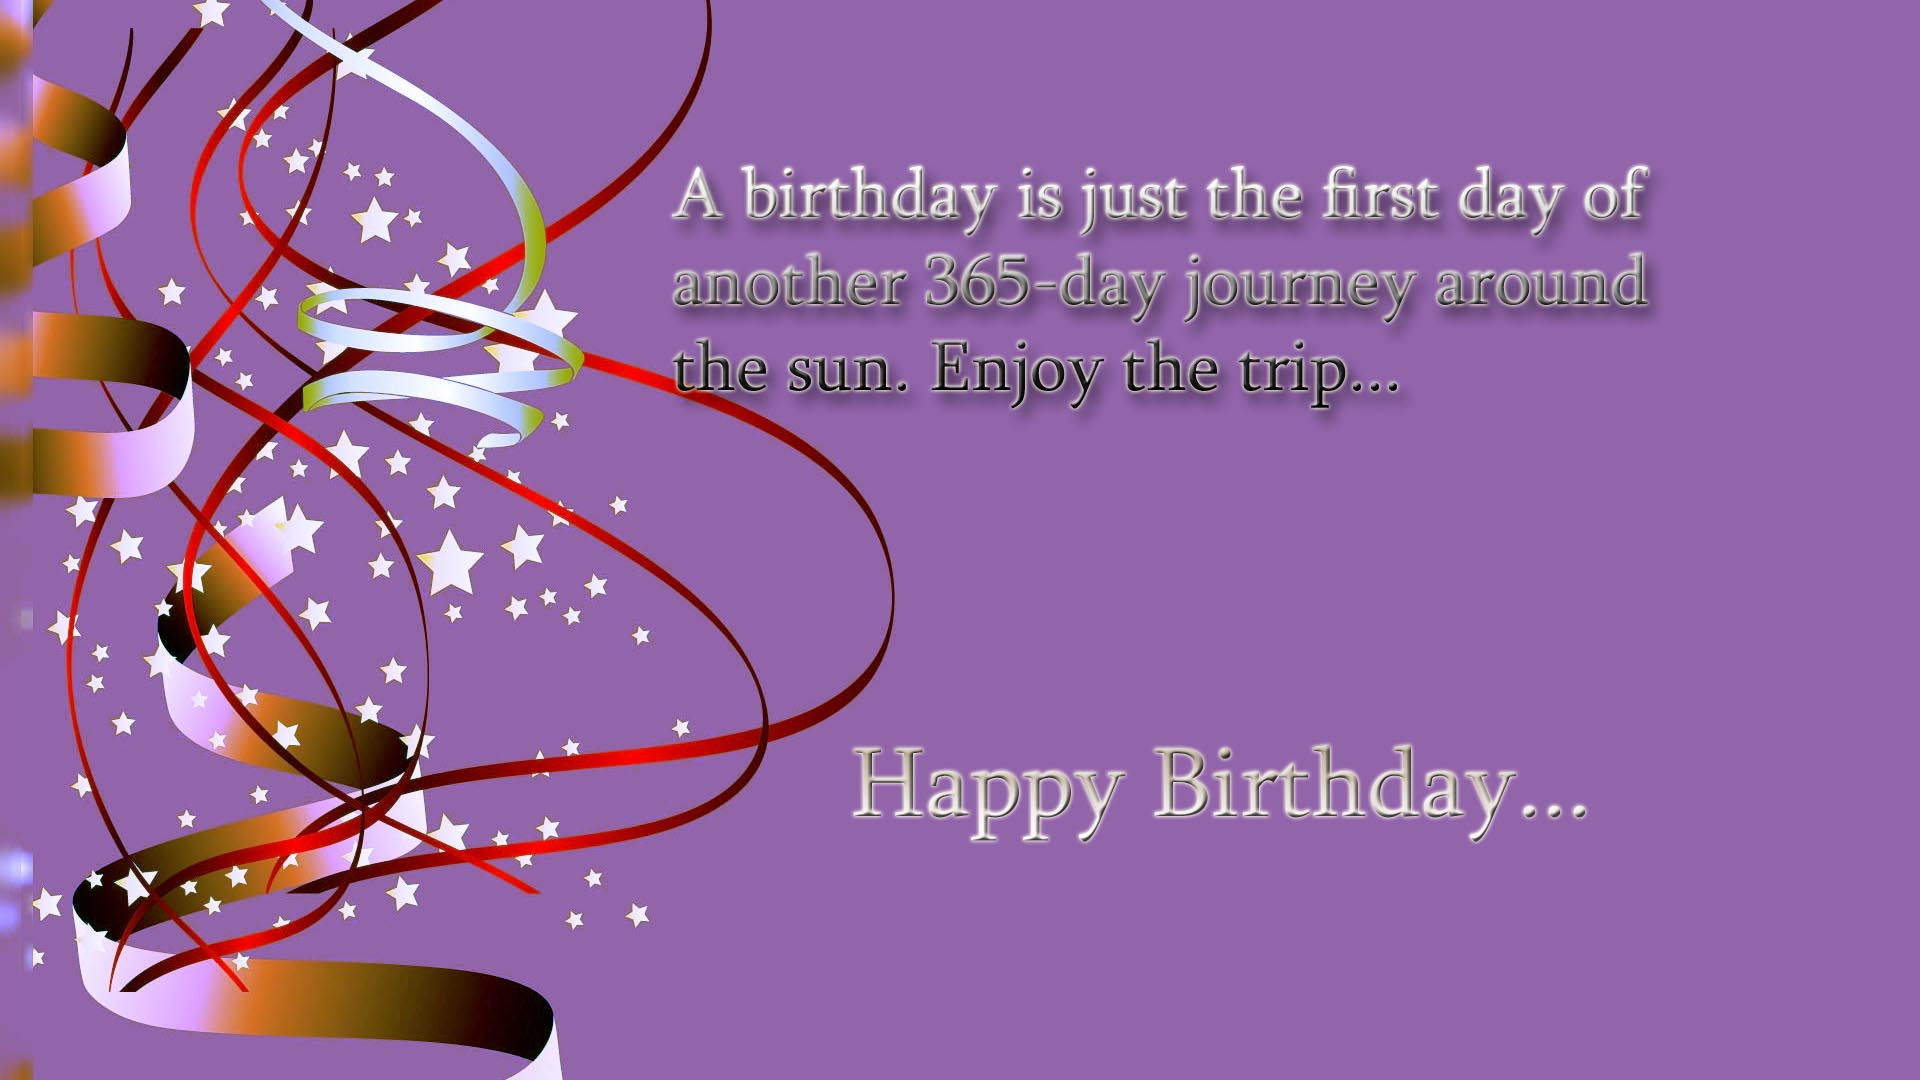 Happy birthday quotes on photo   Choice Wallpaper Choice 1920x1080